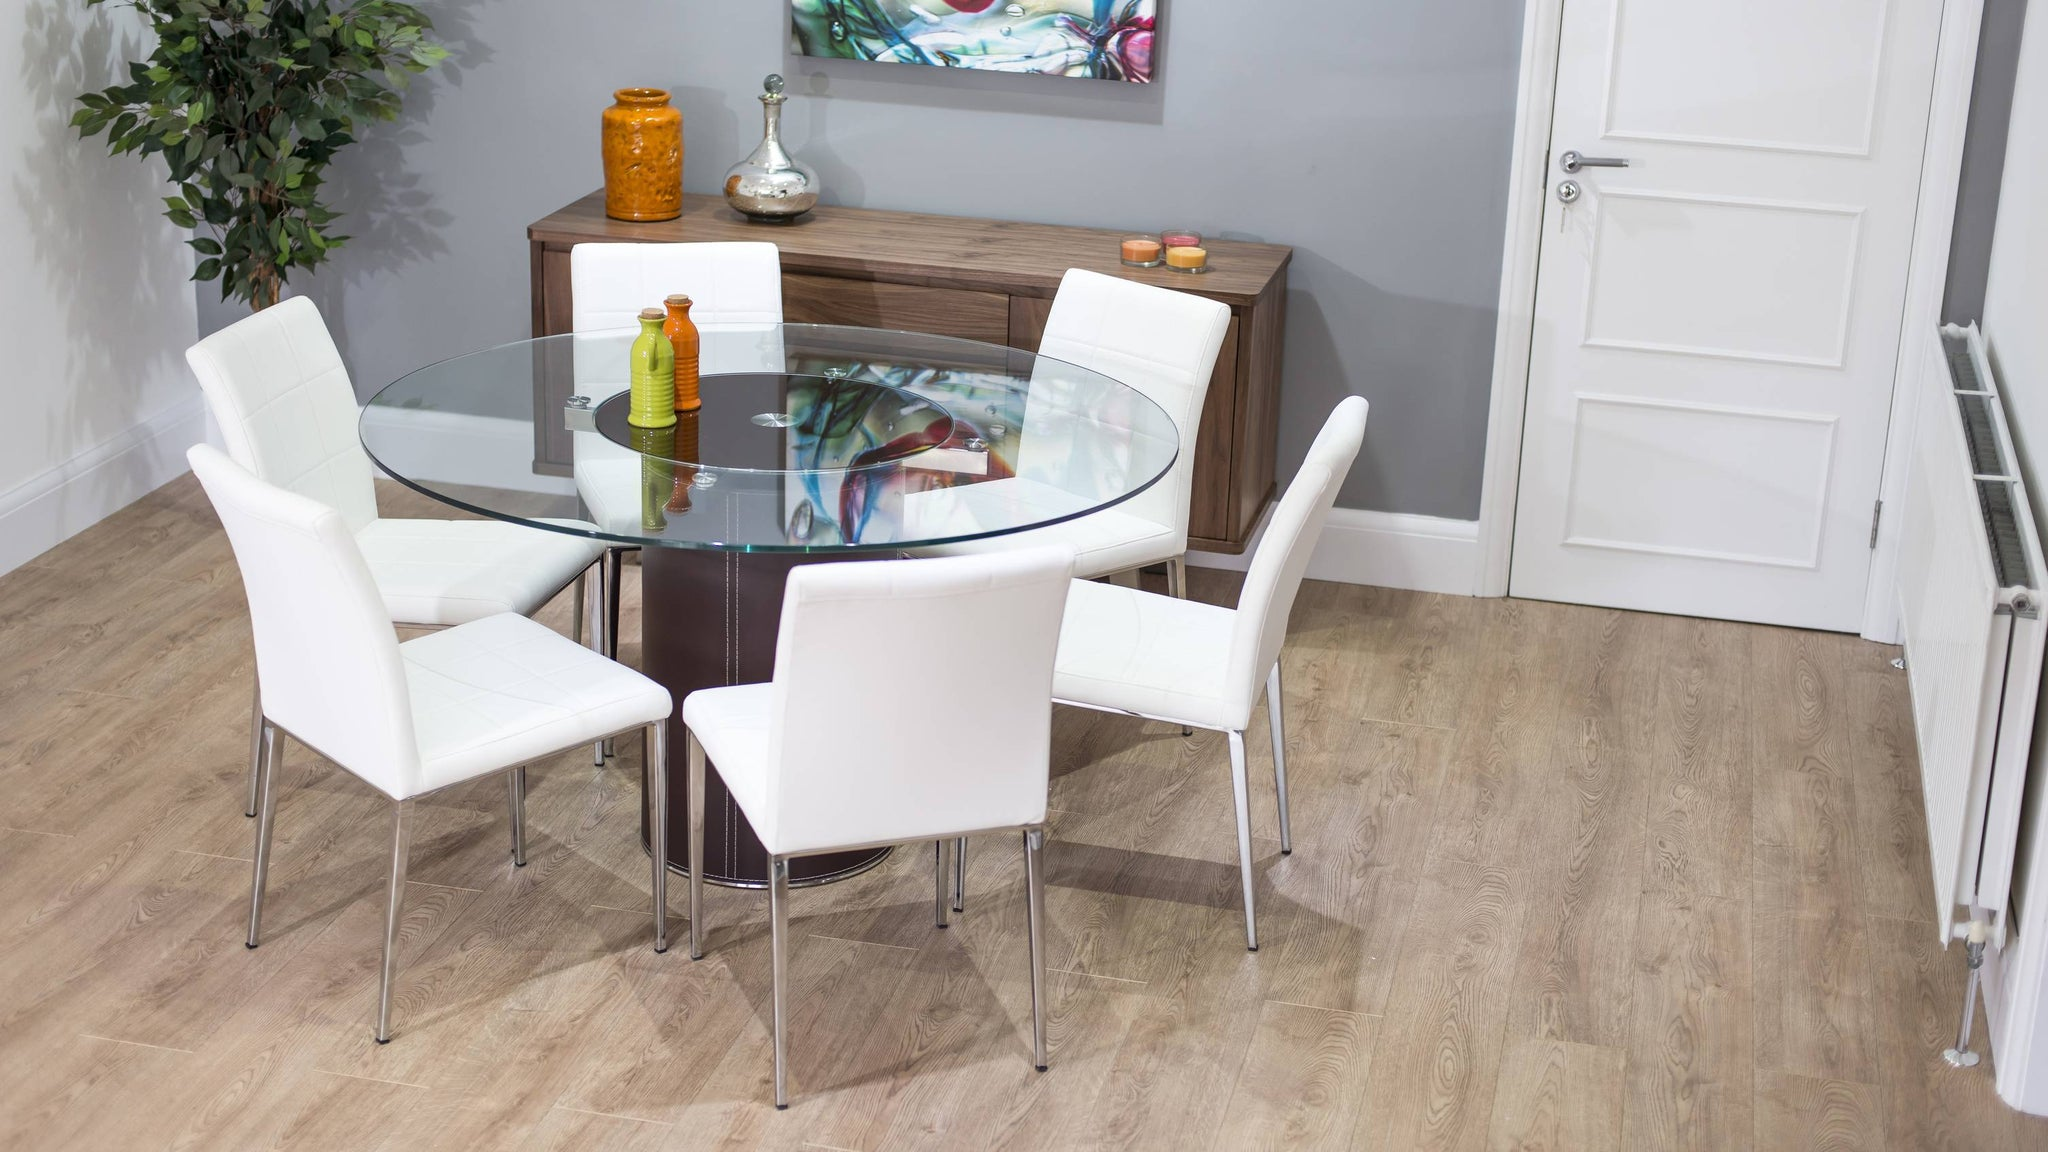 White Chairs and Glass Dining Table